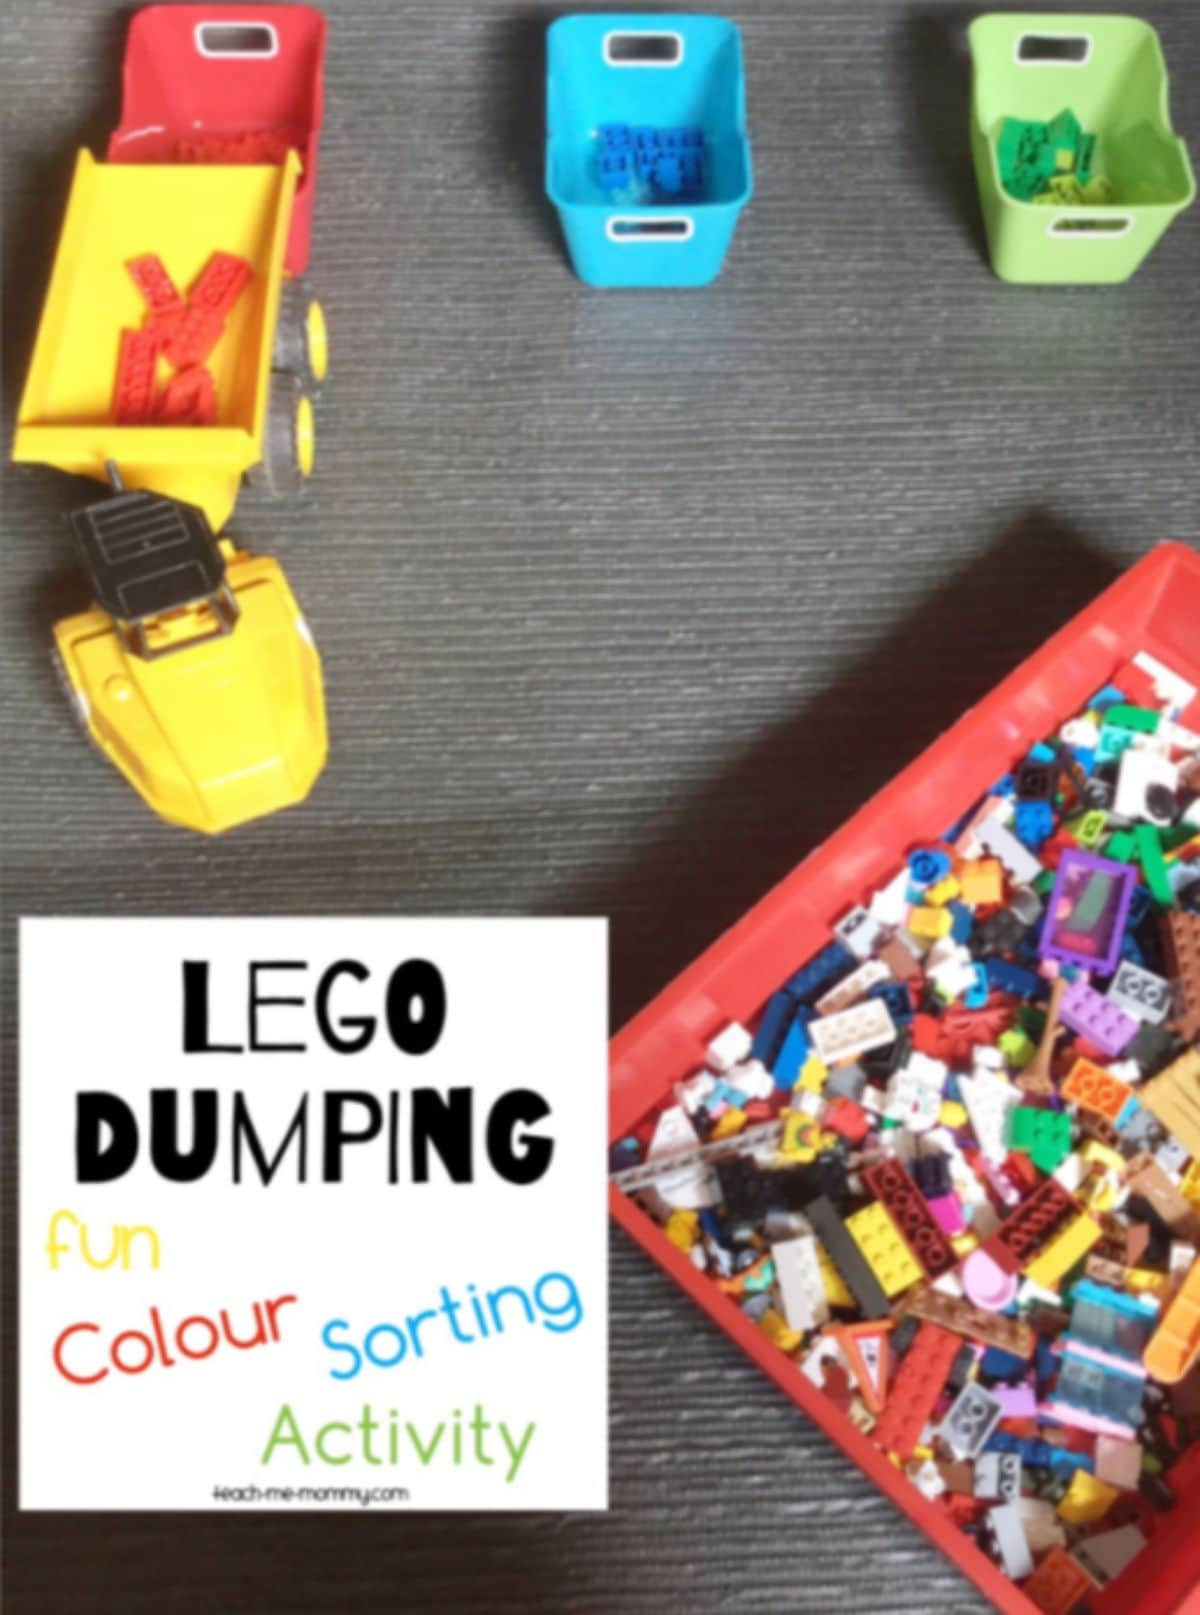 """The text reads """"LEGO dumping, fun colour sorting activity"""" The image is of 3 small tubs one red, green, and blue. In front is a yellow dumper truck holding red lego bricks. In front of this is a larger bucket full of mixed lego"""